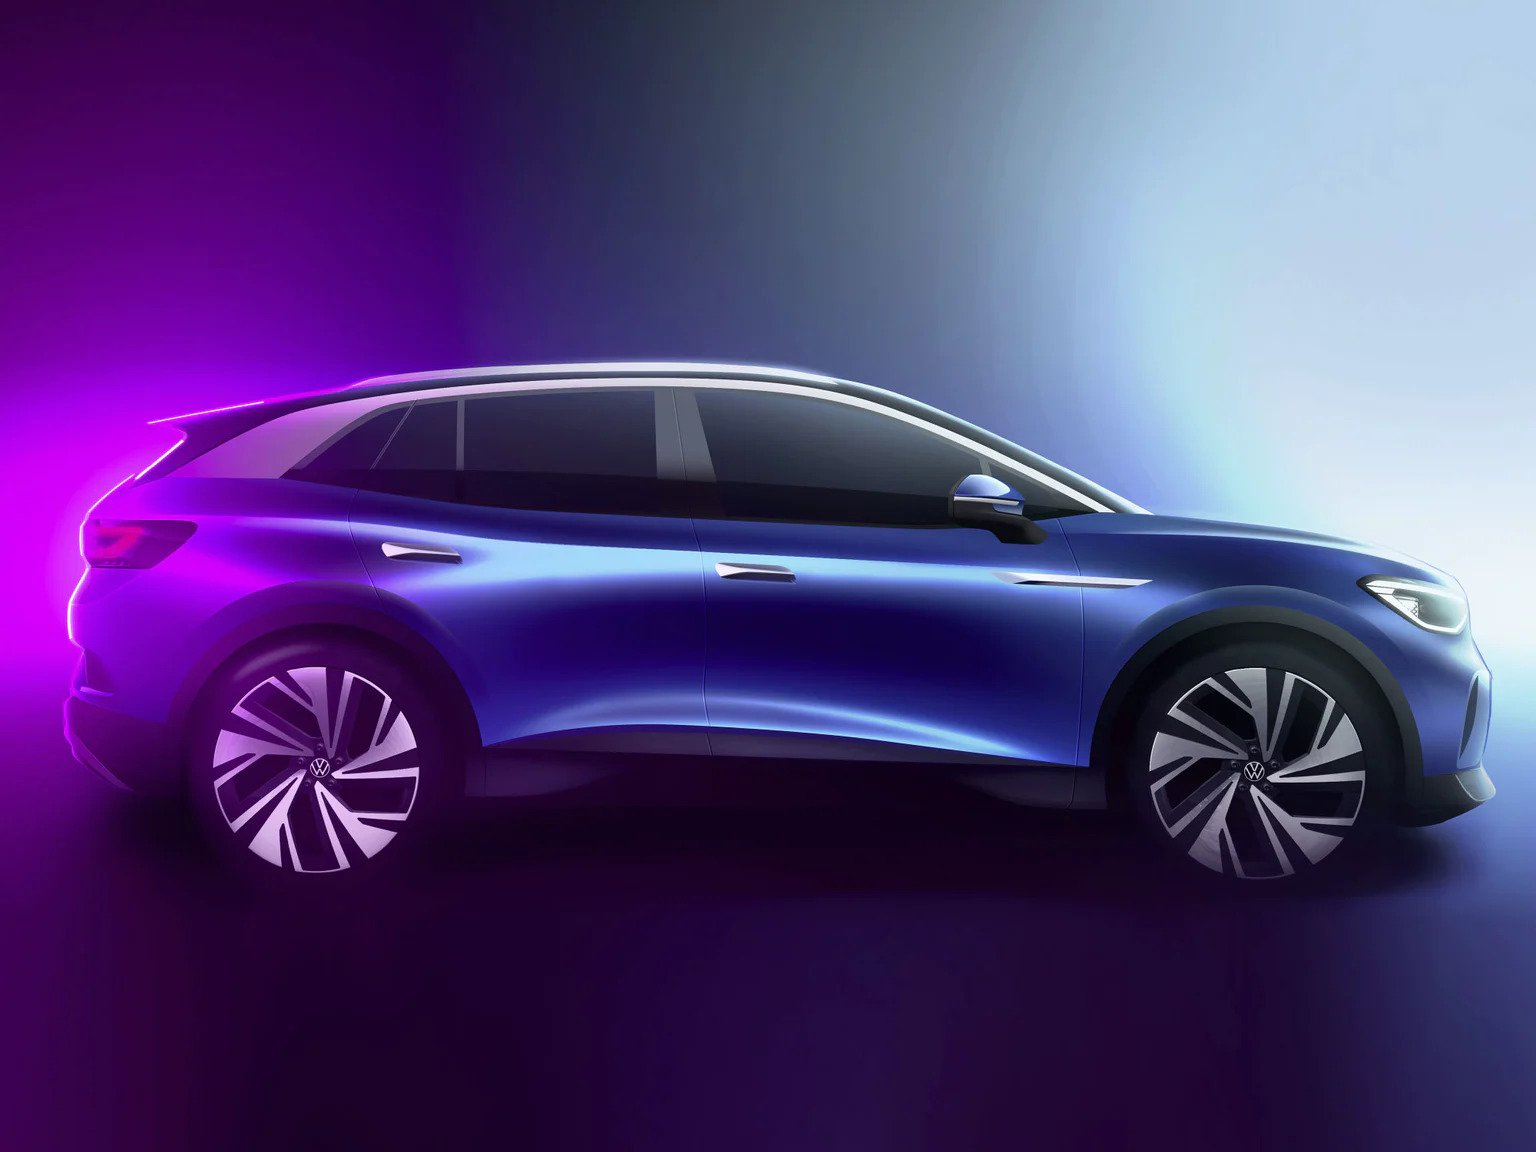 2022 VW ID.4 Exterior Look